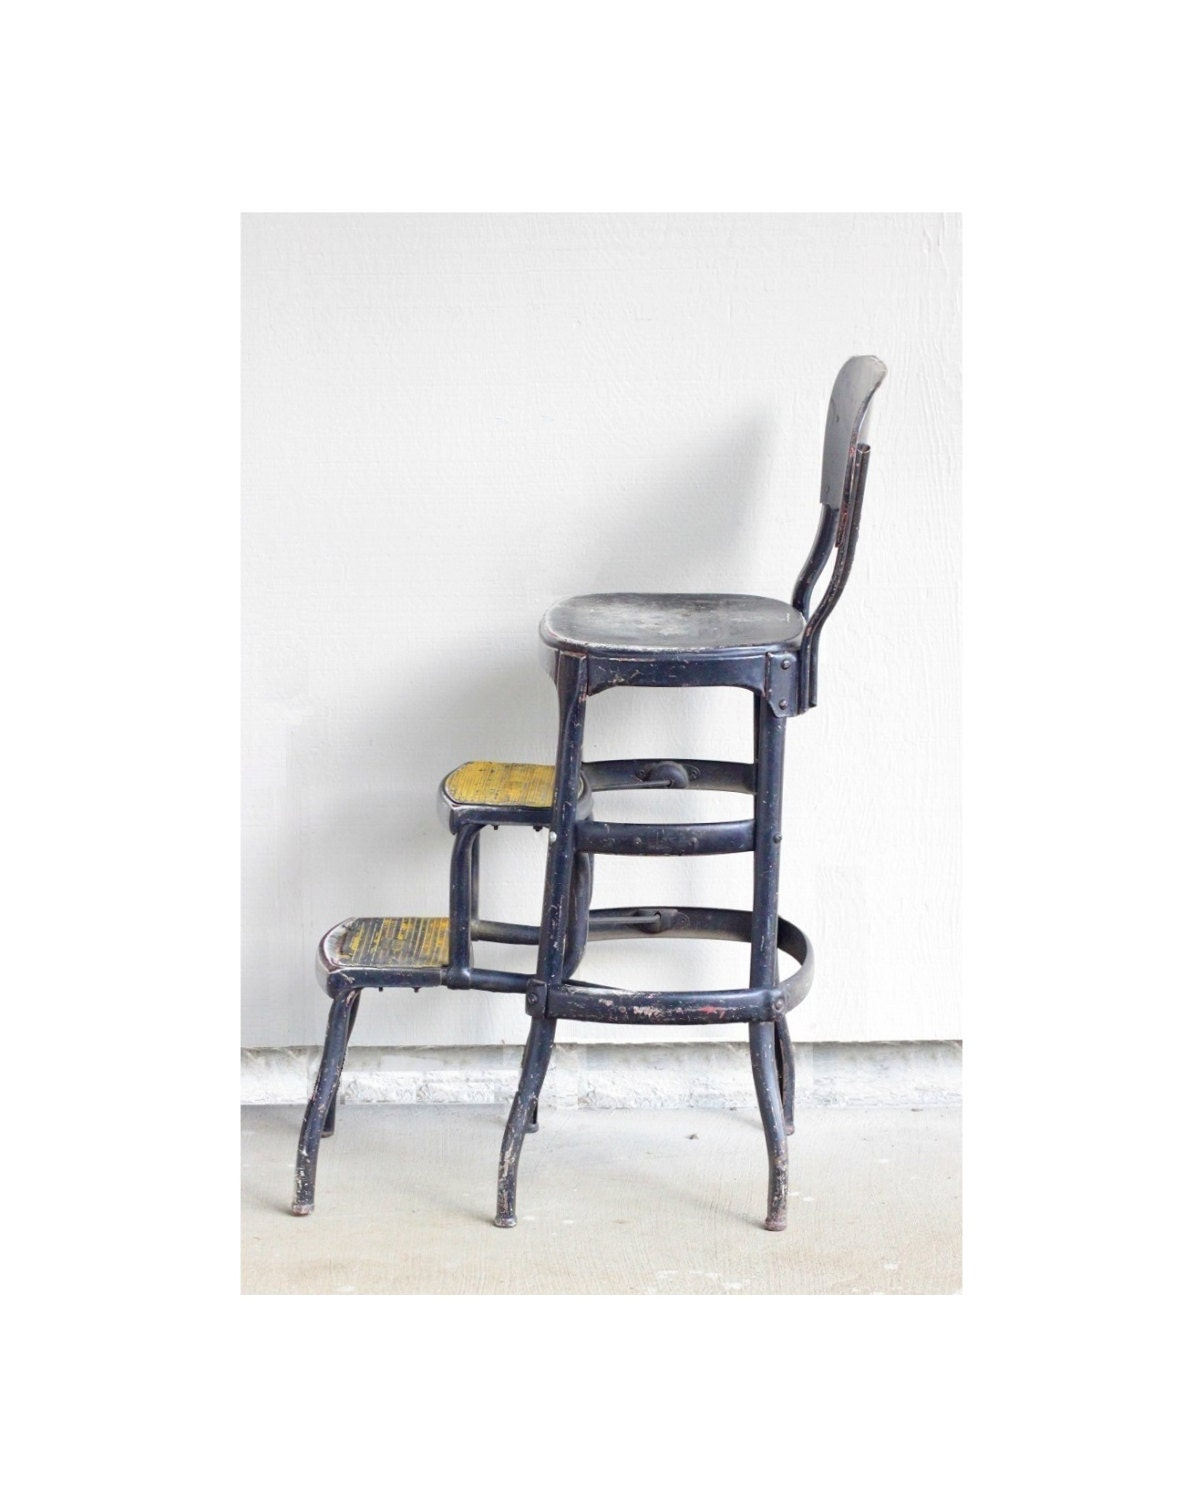 Items similar to Vintage Step Stool Folding Chair Black Yellow Industrial Hom